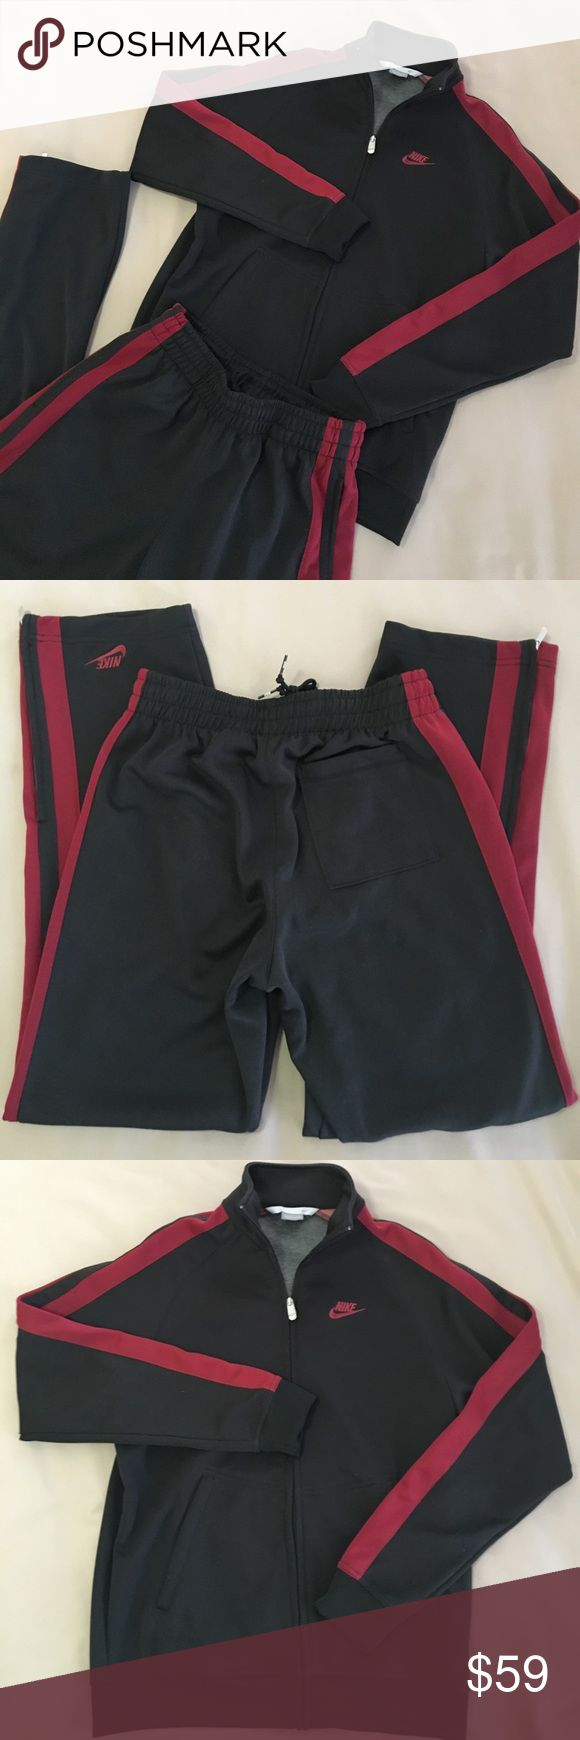 🚨NIKE MENS TRACK SUIT SET🚨 EUC. Black and maroon Nike track suit. 87/13 cotton/poly. Full zip jacket with pockets. Check out the great zippered-meshed slits on the pant cuffs! Thanks! 👣 Nike Pants Sweatpants & Joggers